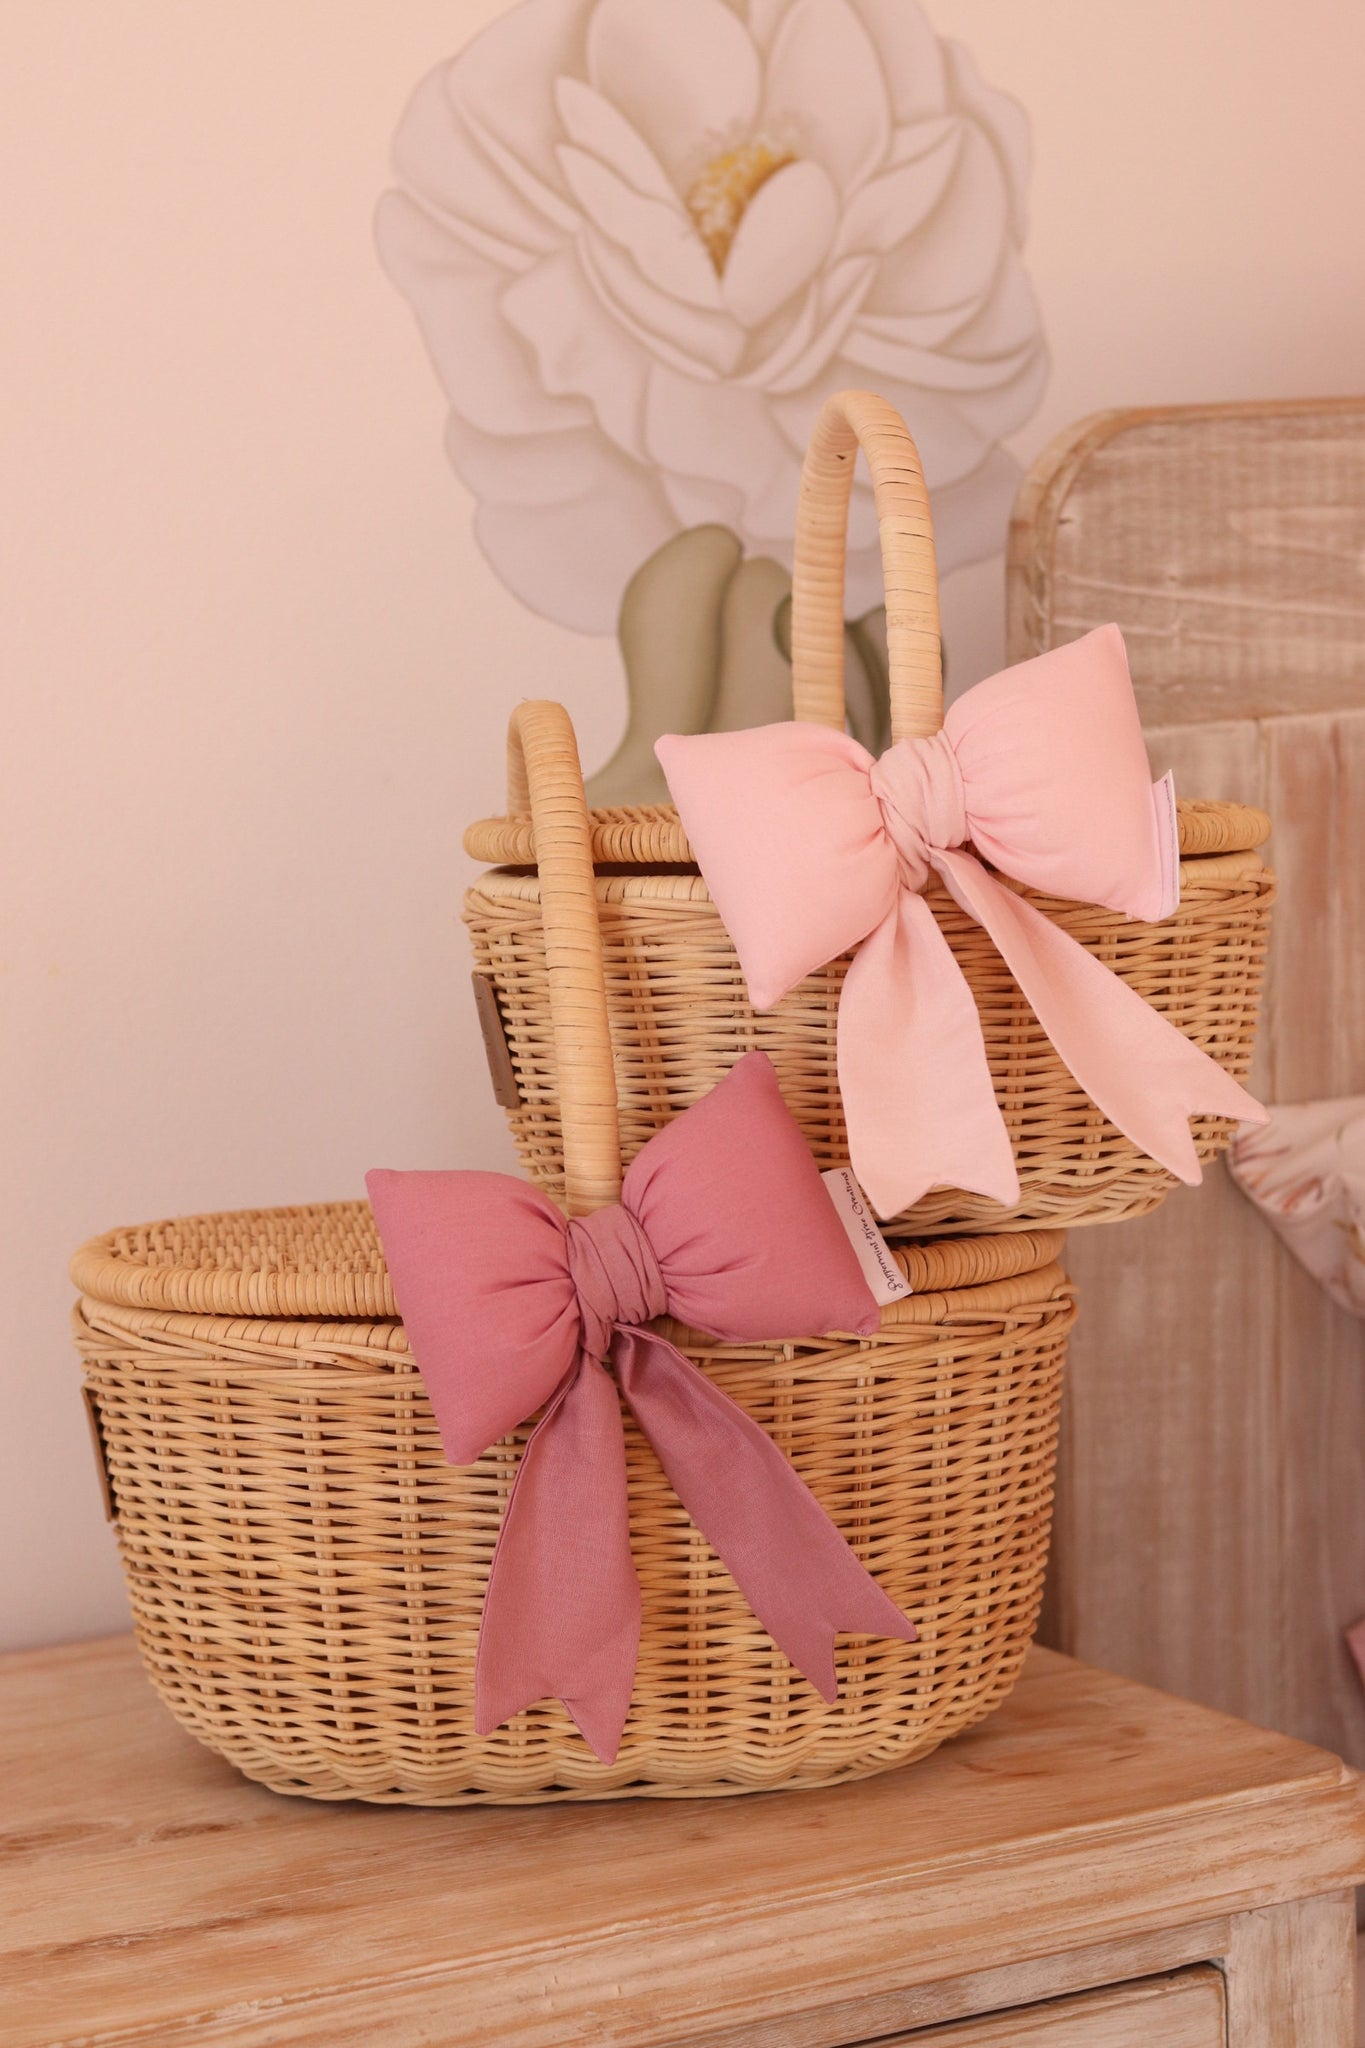 PRE-ORDER Dorothy picnic Baskets - two sizes